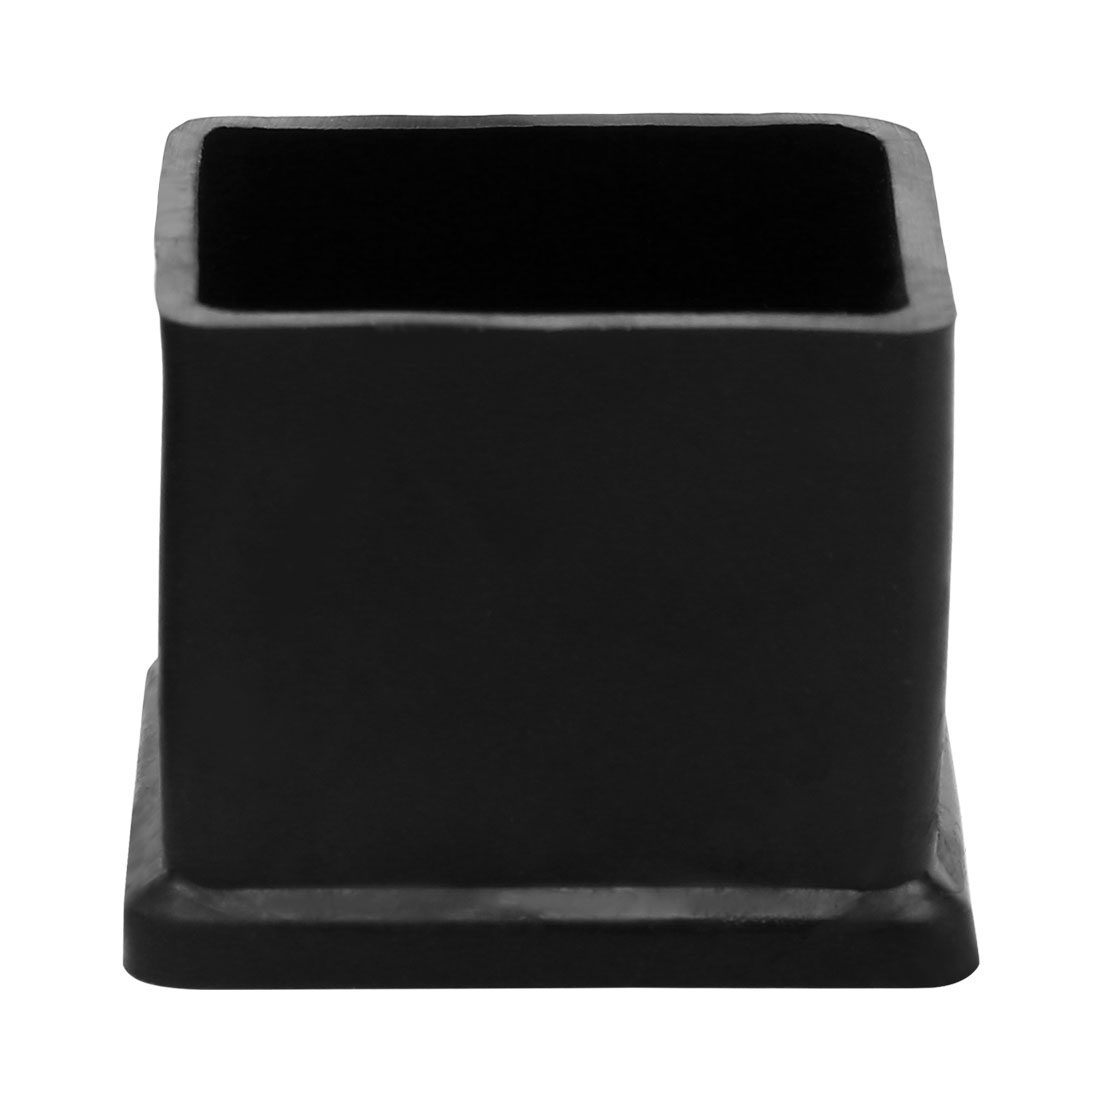 Black Rubber Furniture Table Foot Leg Covers Pad Floor Protector 25mmx25mm